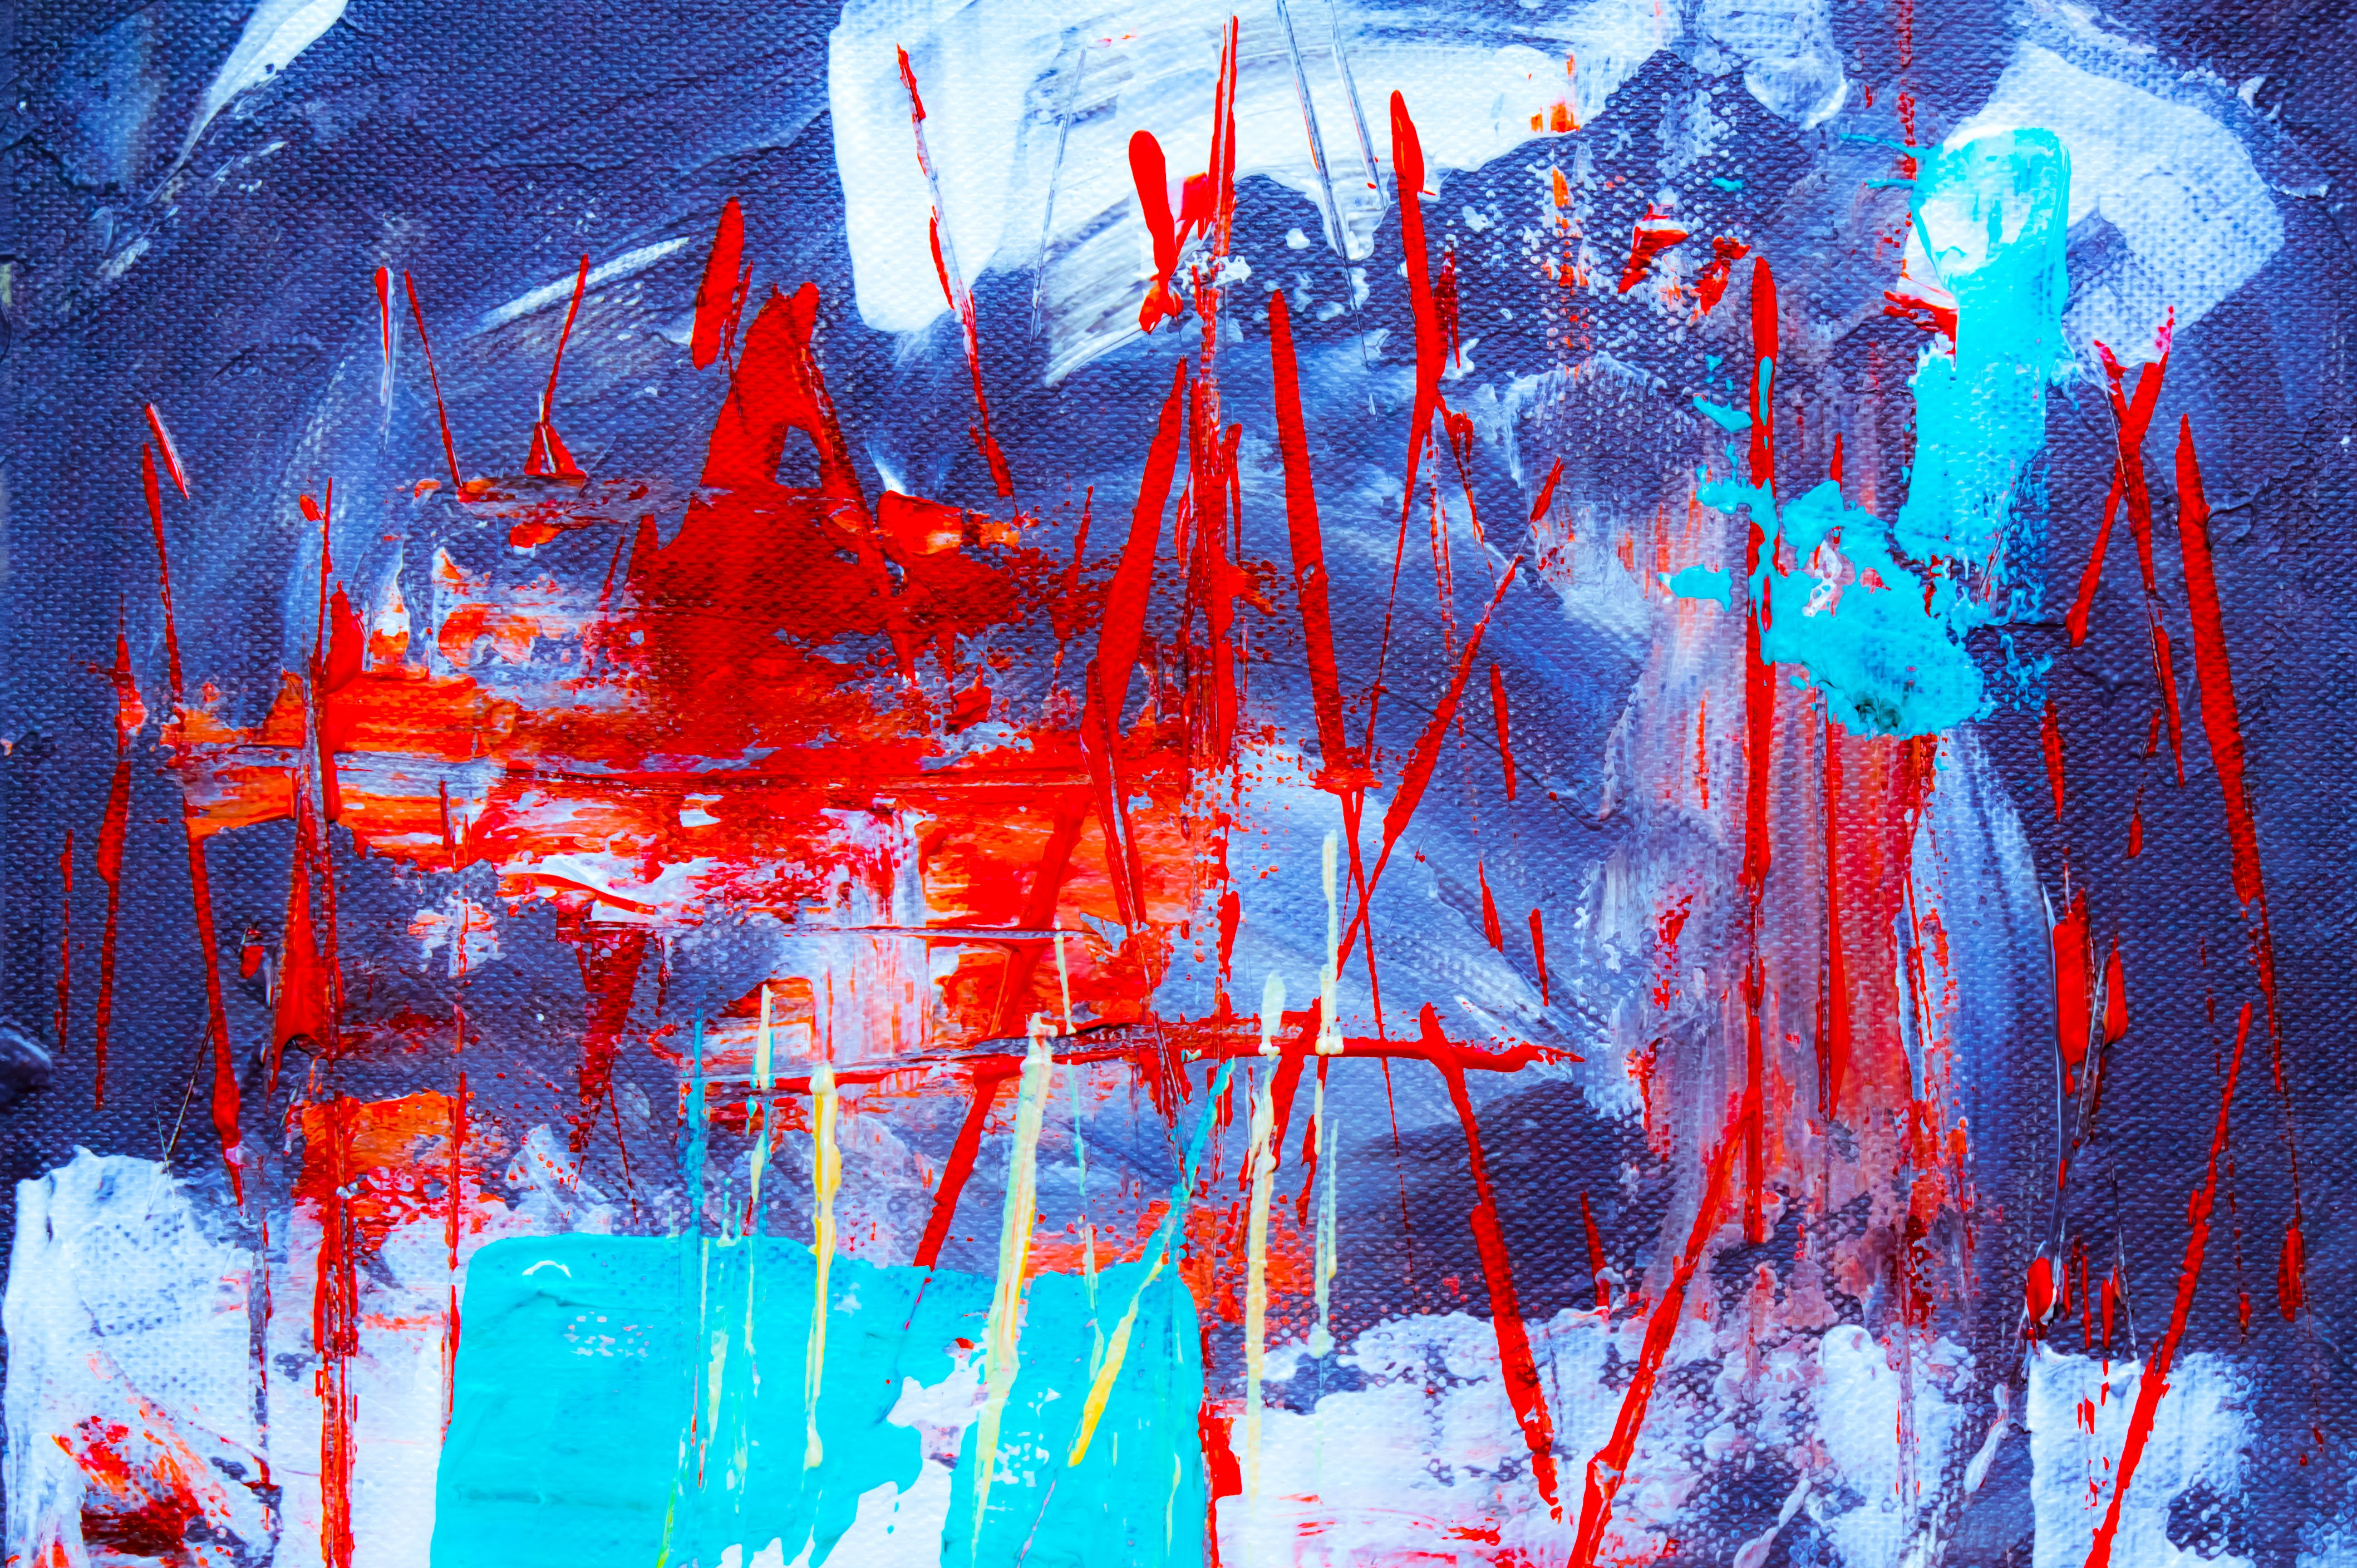 Red, Blue, and Teal Abstract Painting